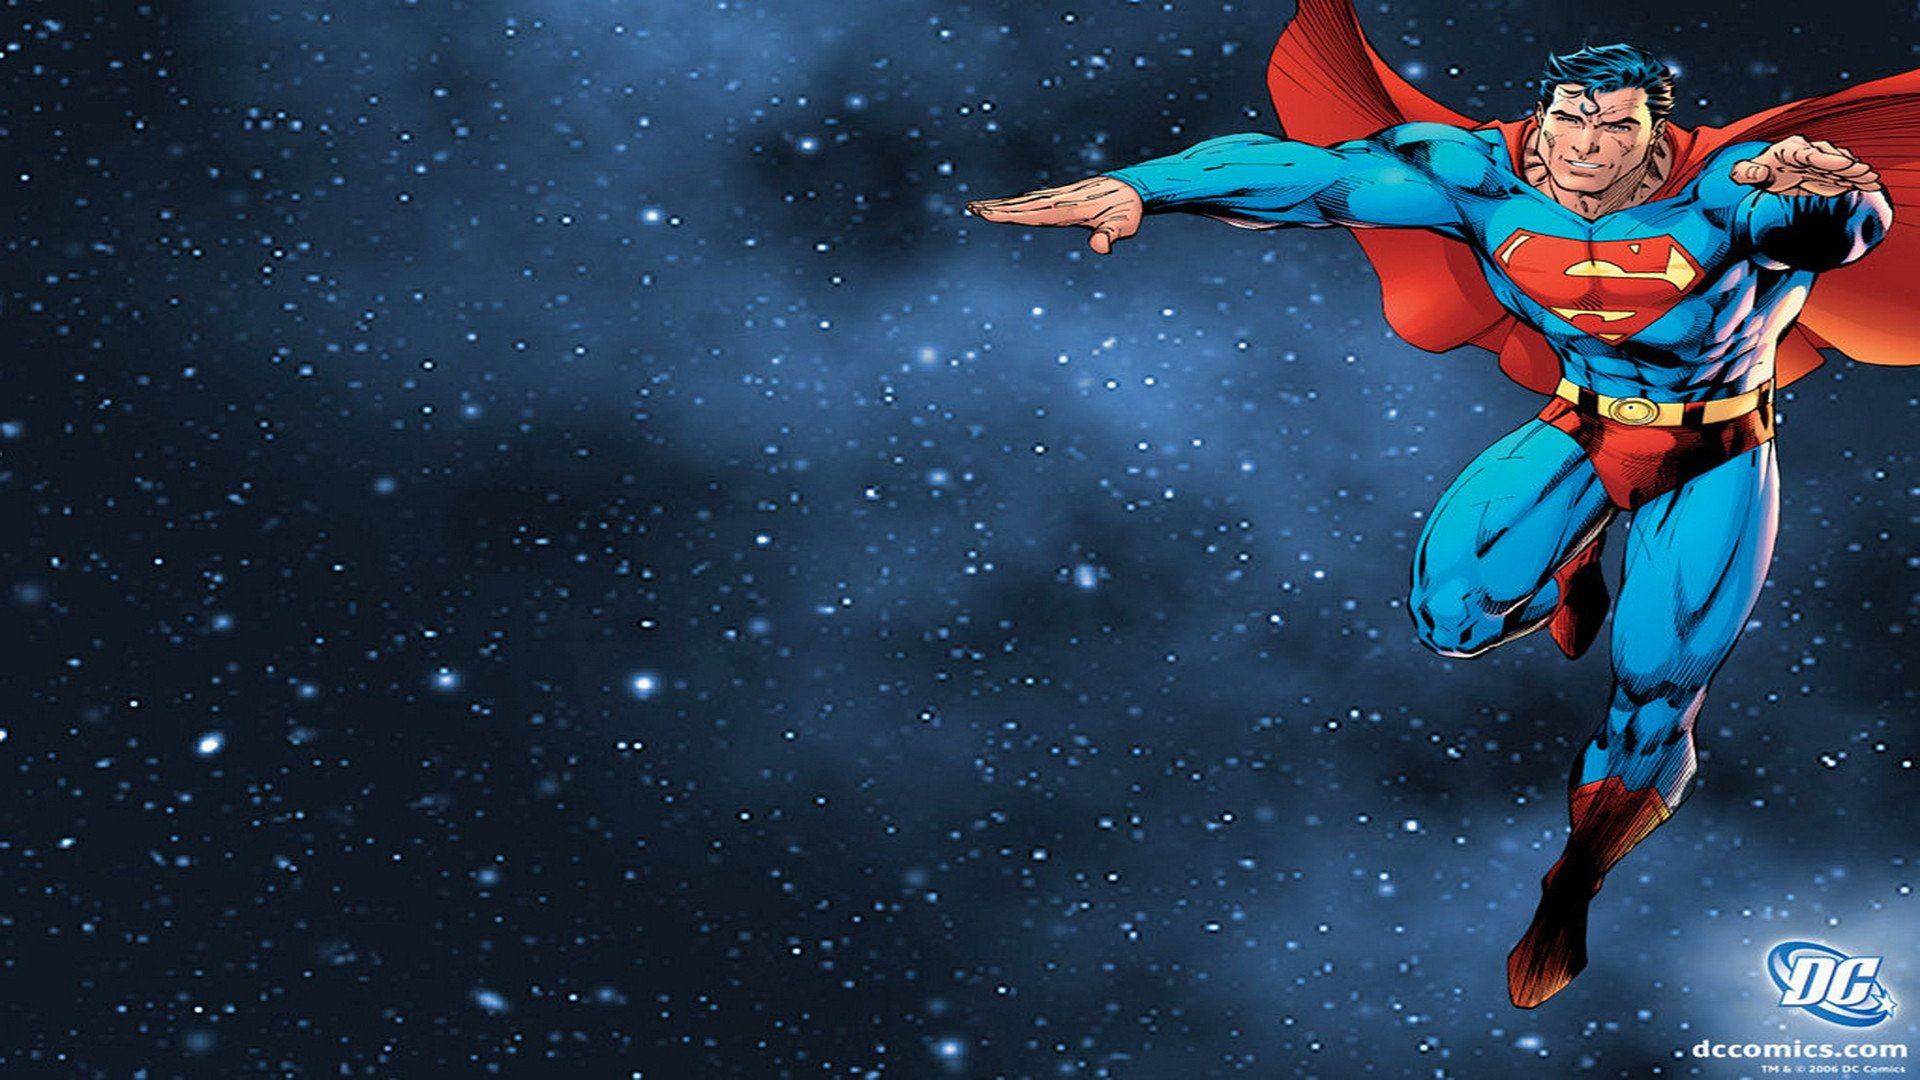 Superman Wallpapers 1920x1080 1920x1080